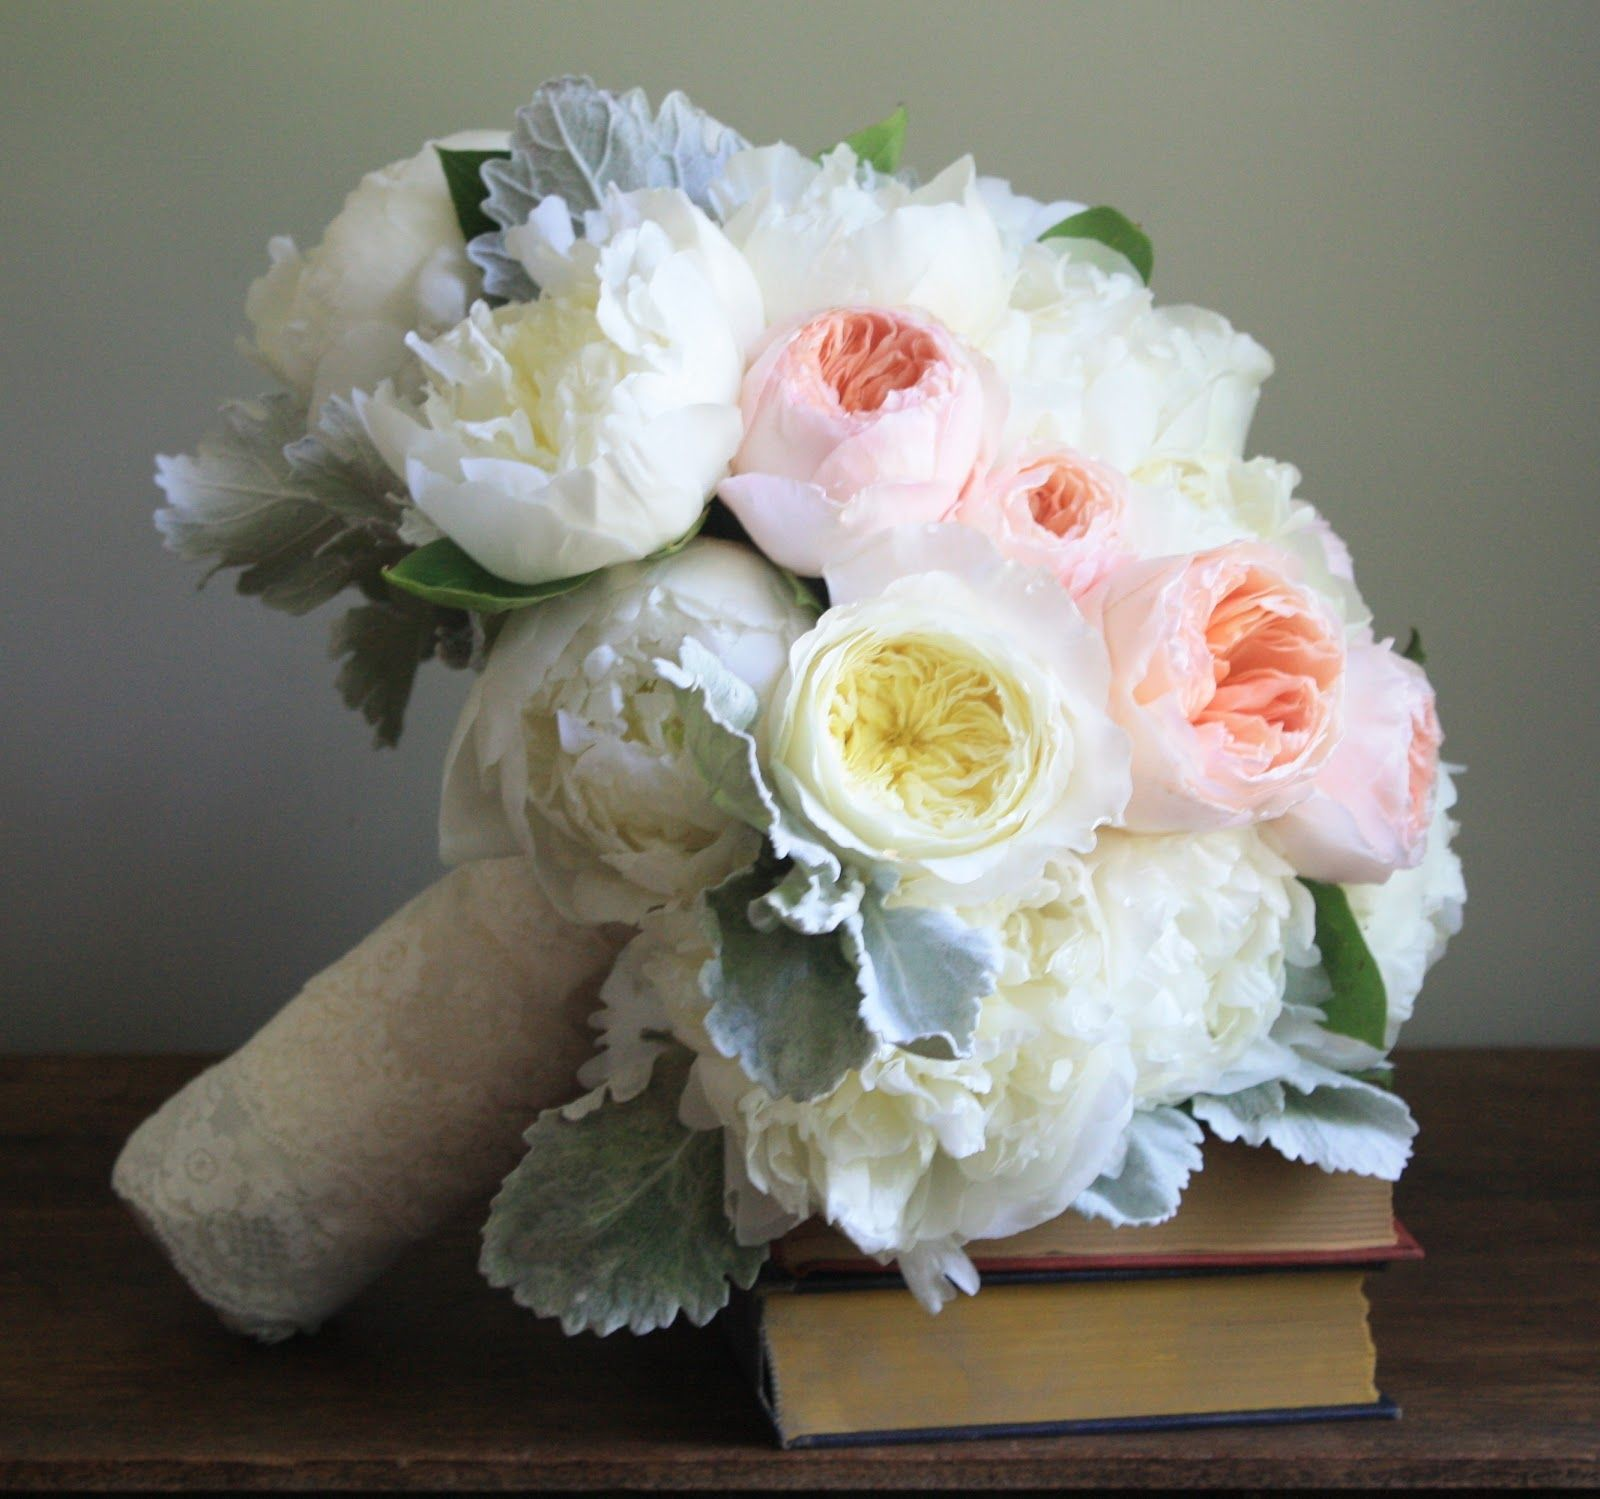 Combination Of White Peonies And Peach Juliet Roses (leave Out Greenery)